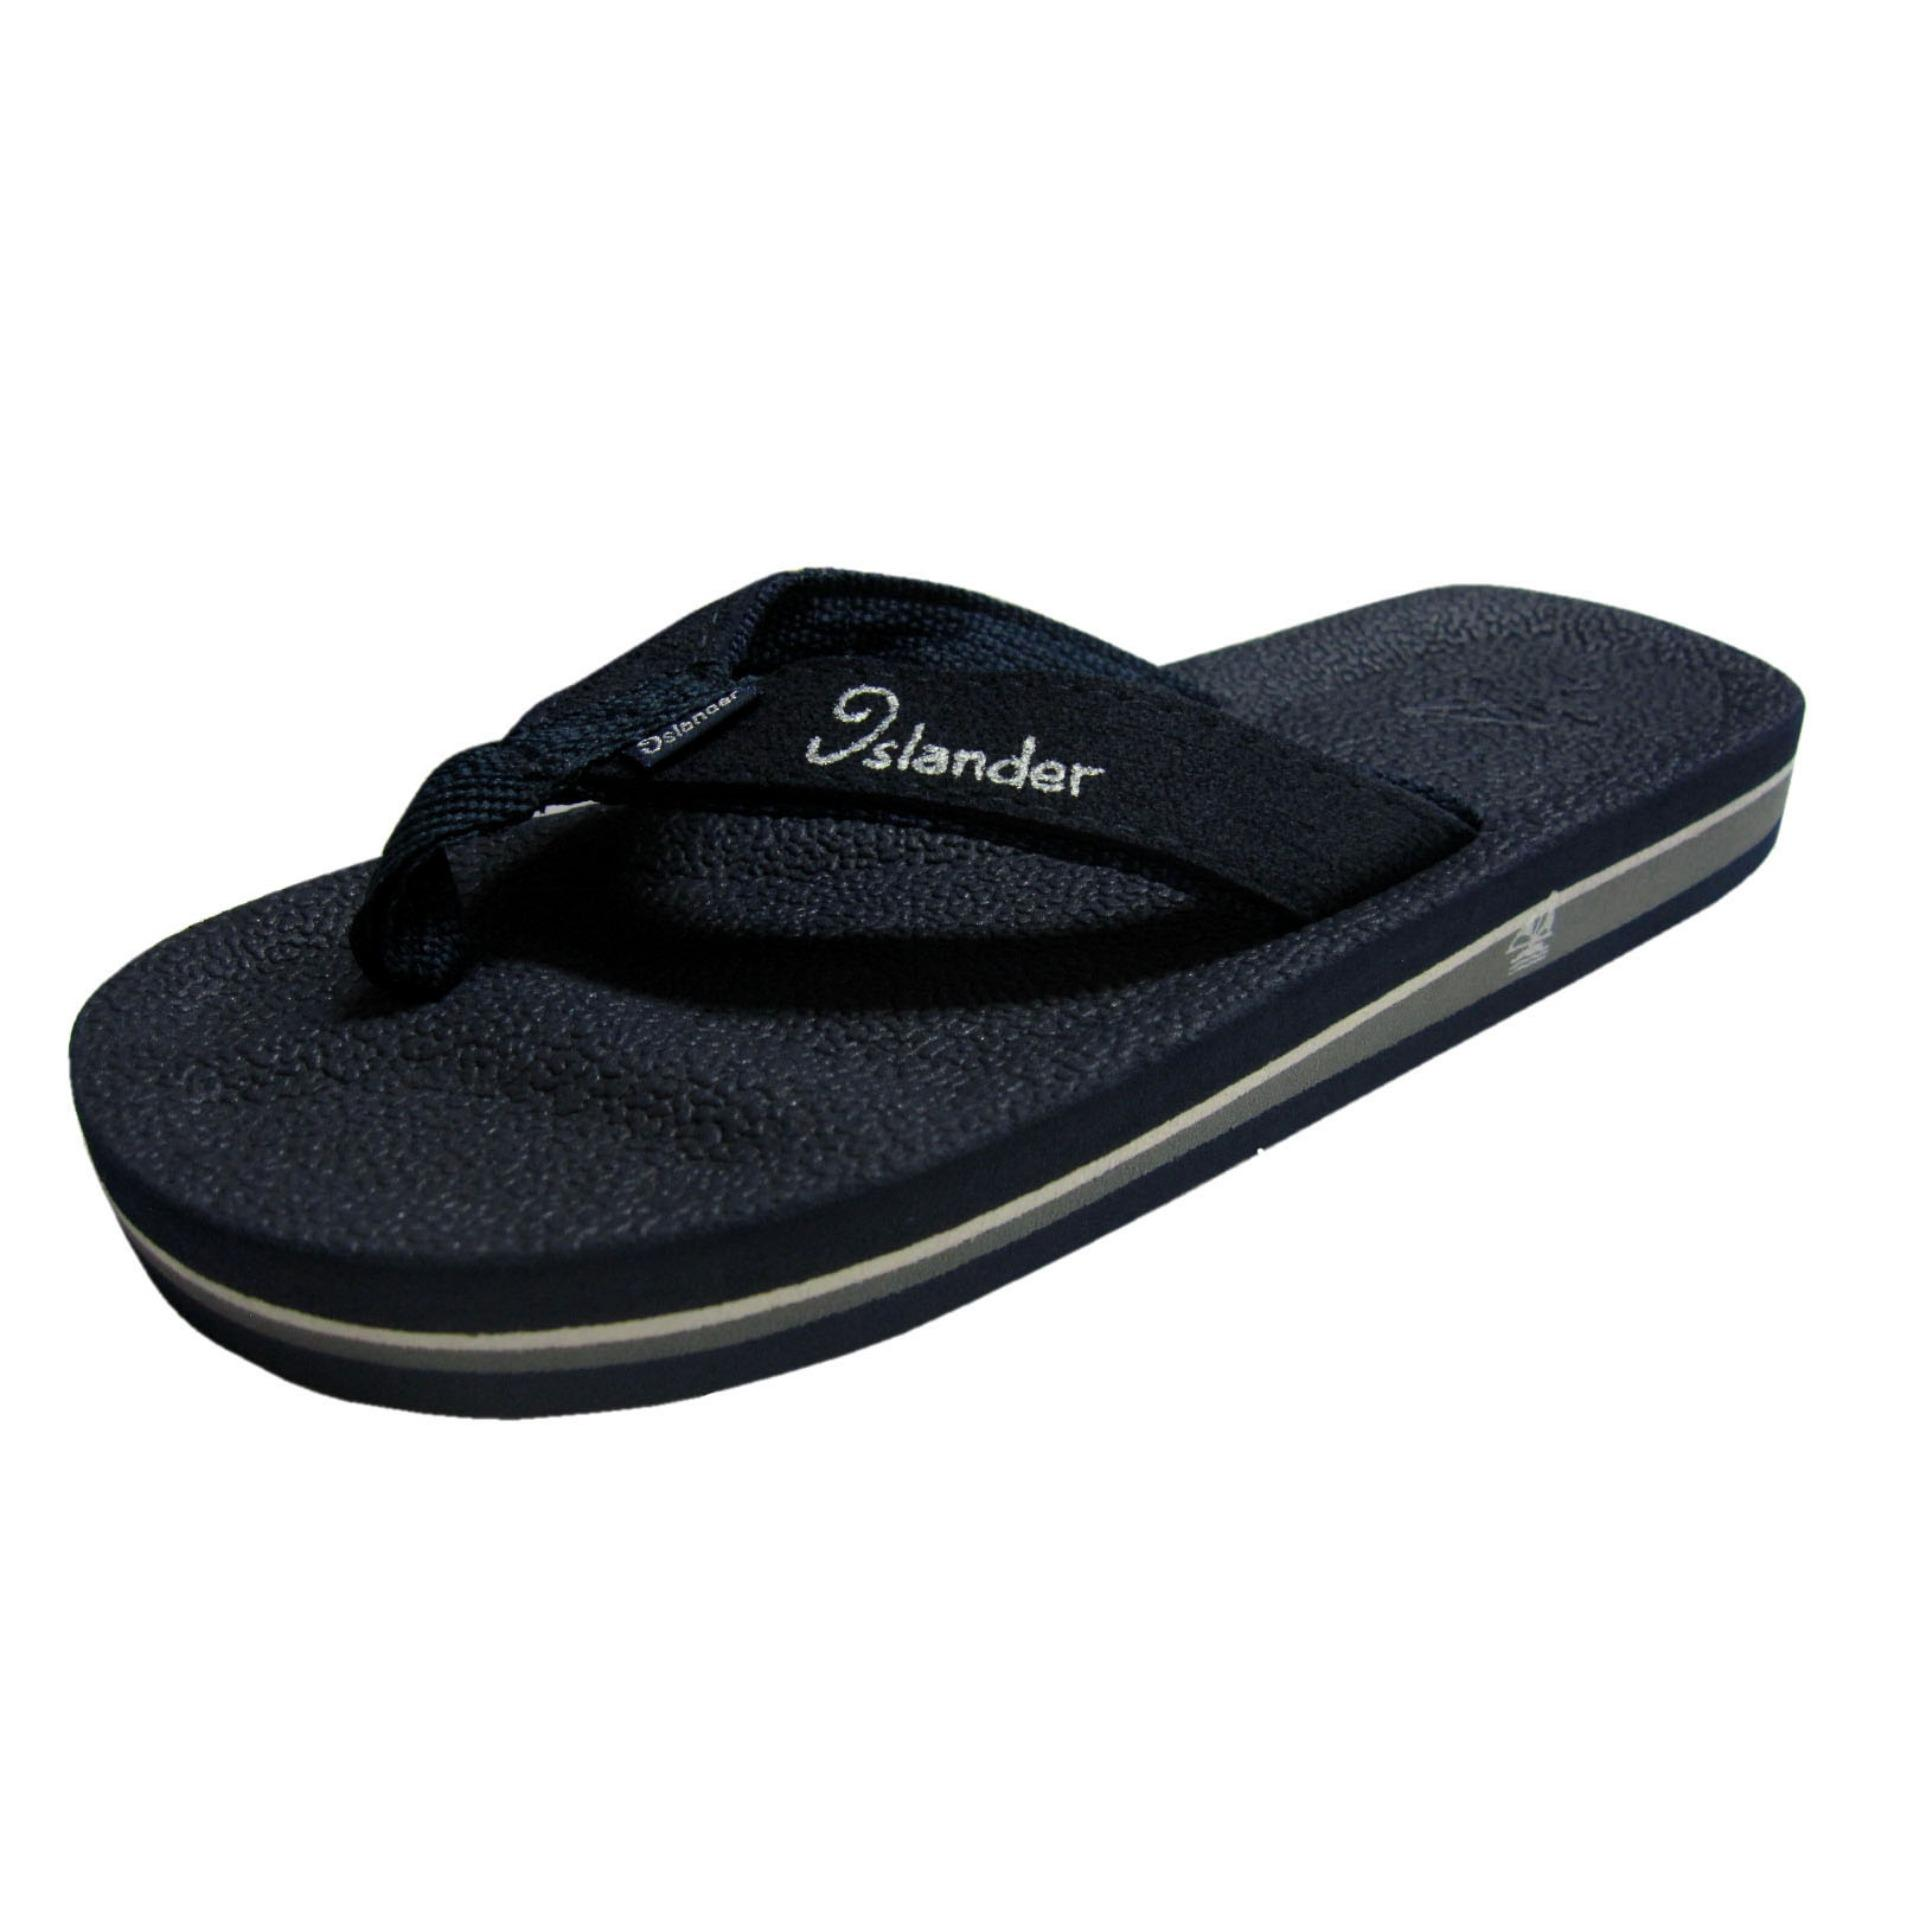 6c12672c5b9a8 Islander Philippines  Islander price list - Slippers for Men for sale